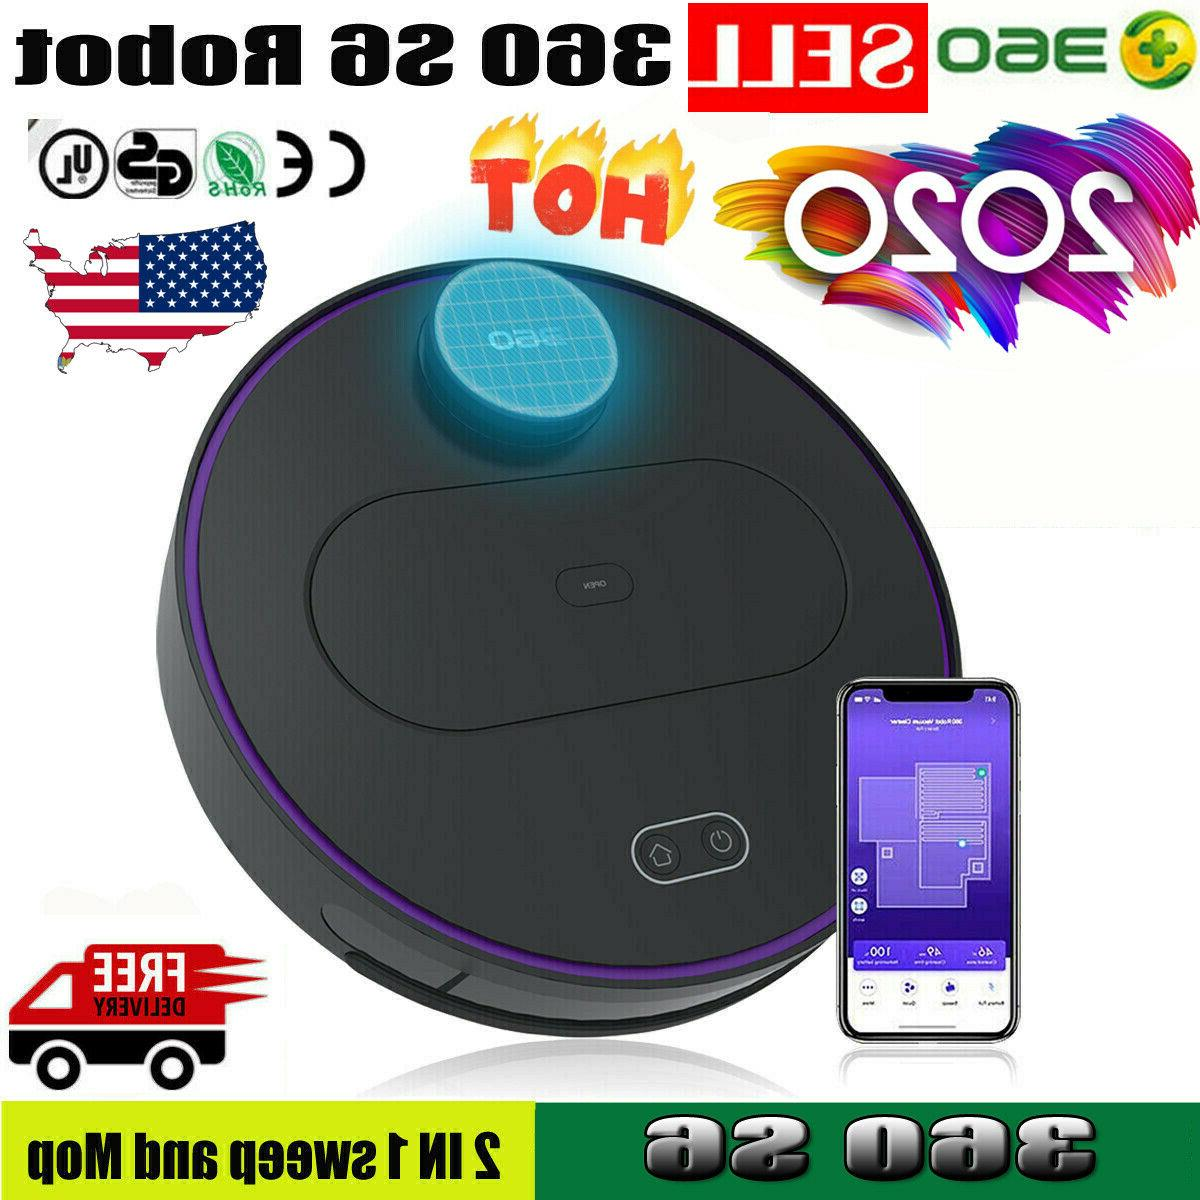 s6 vacuum cleaner lds smart robotic mopping